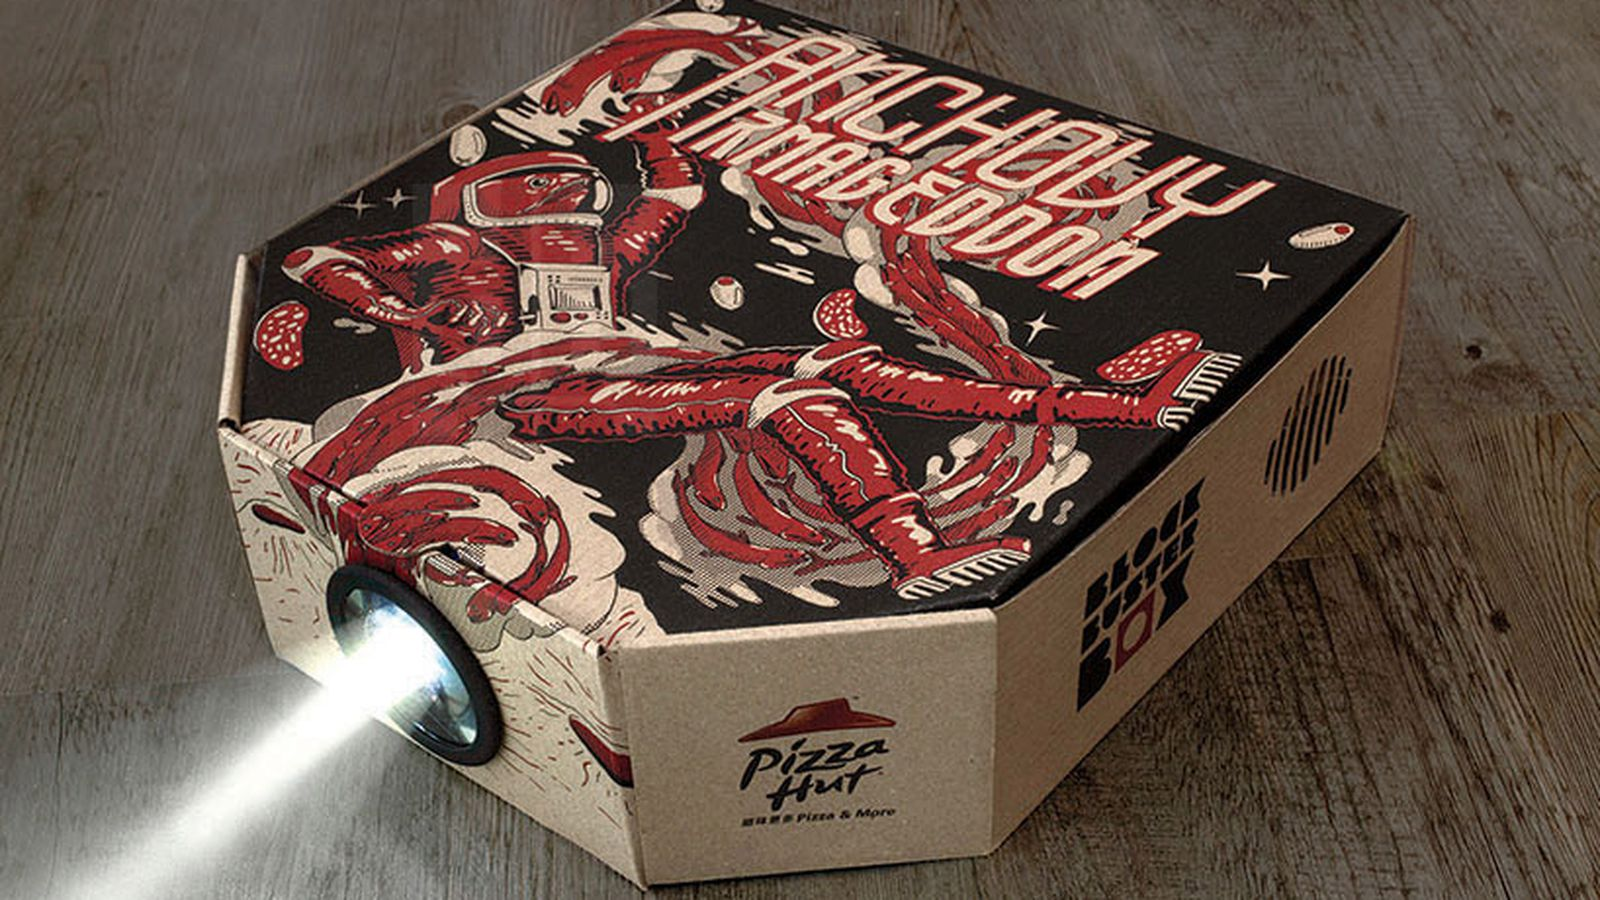 This Pizza Hut box turns into a movie projector - The Verge